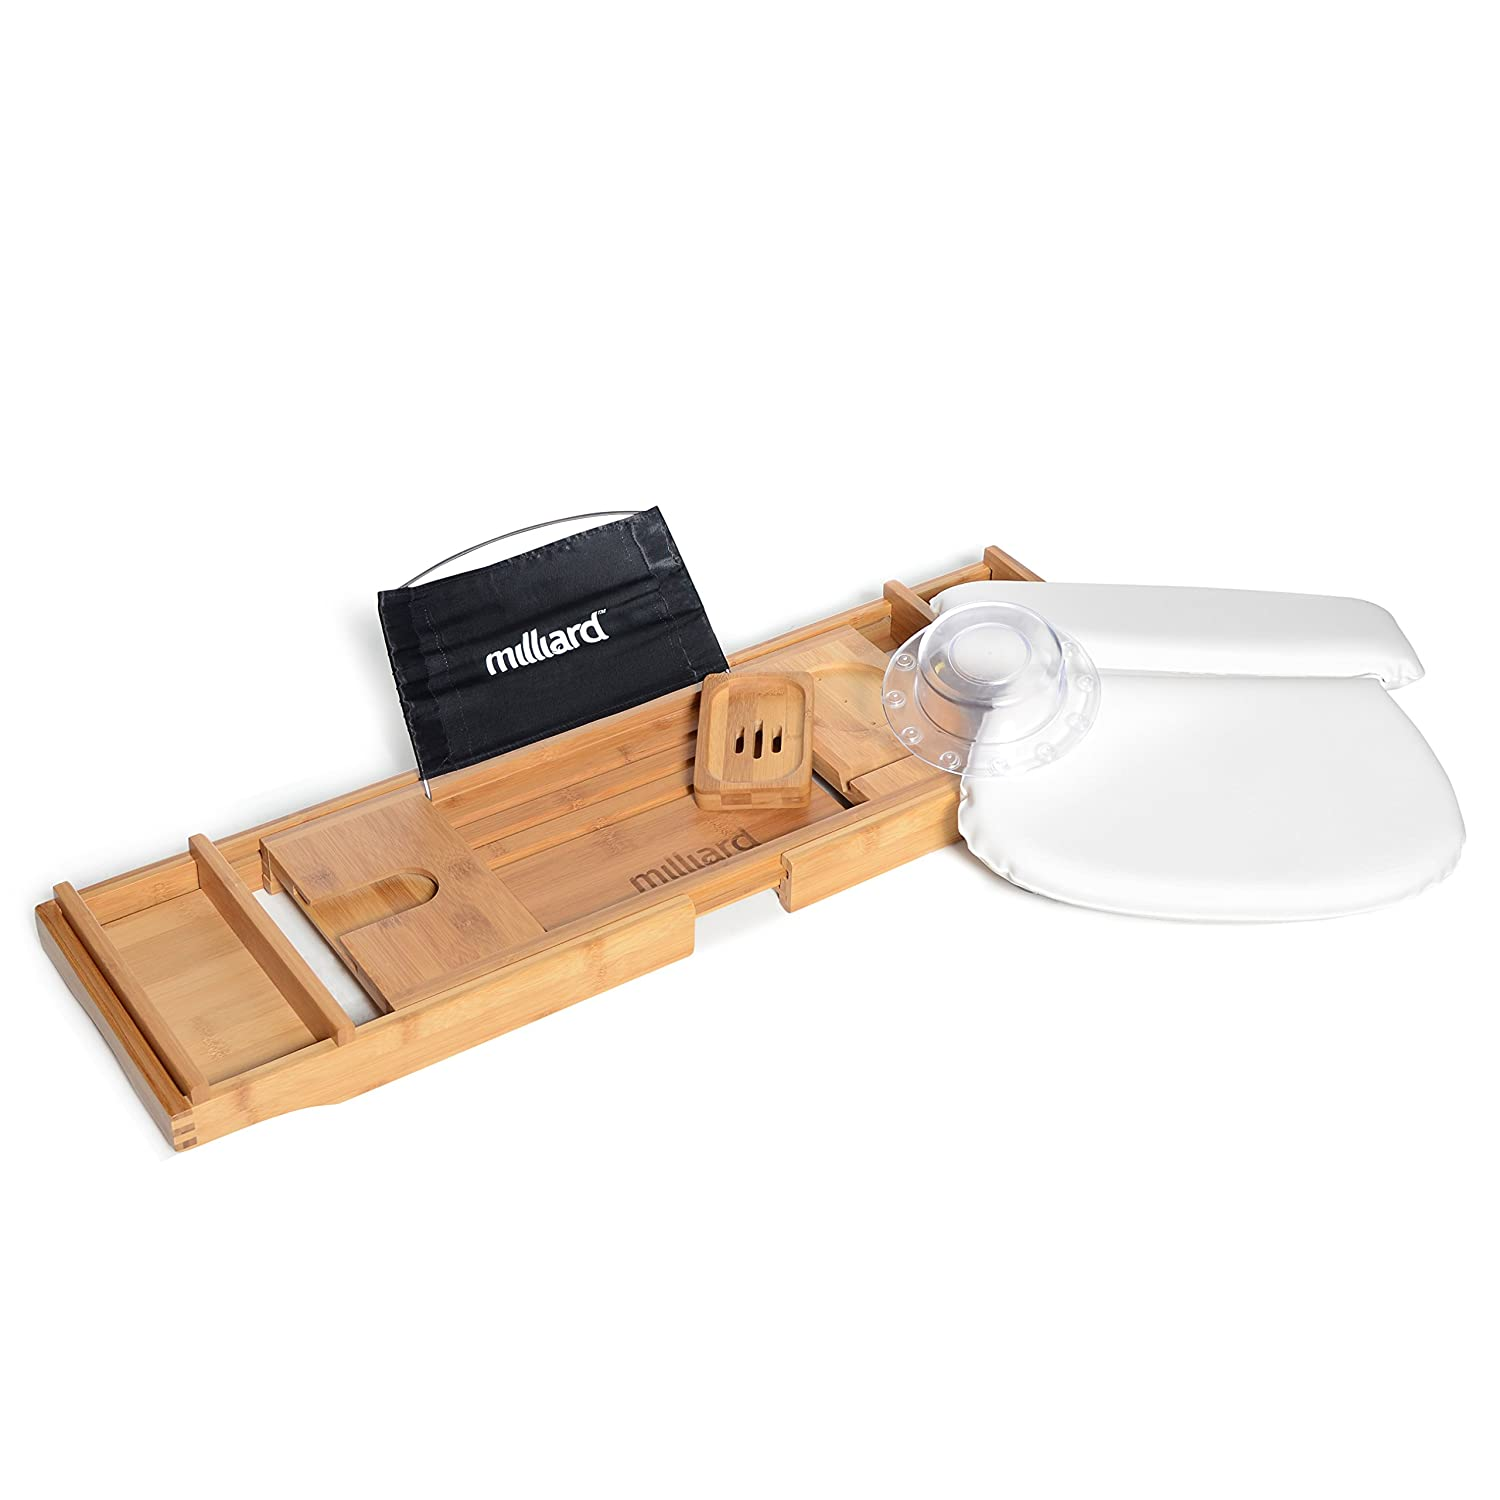 Milliard Bathtub Caddy Wood Tray, with Bath Pillow and Overflow Bathtub Drain Cover Spa Set